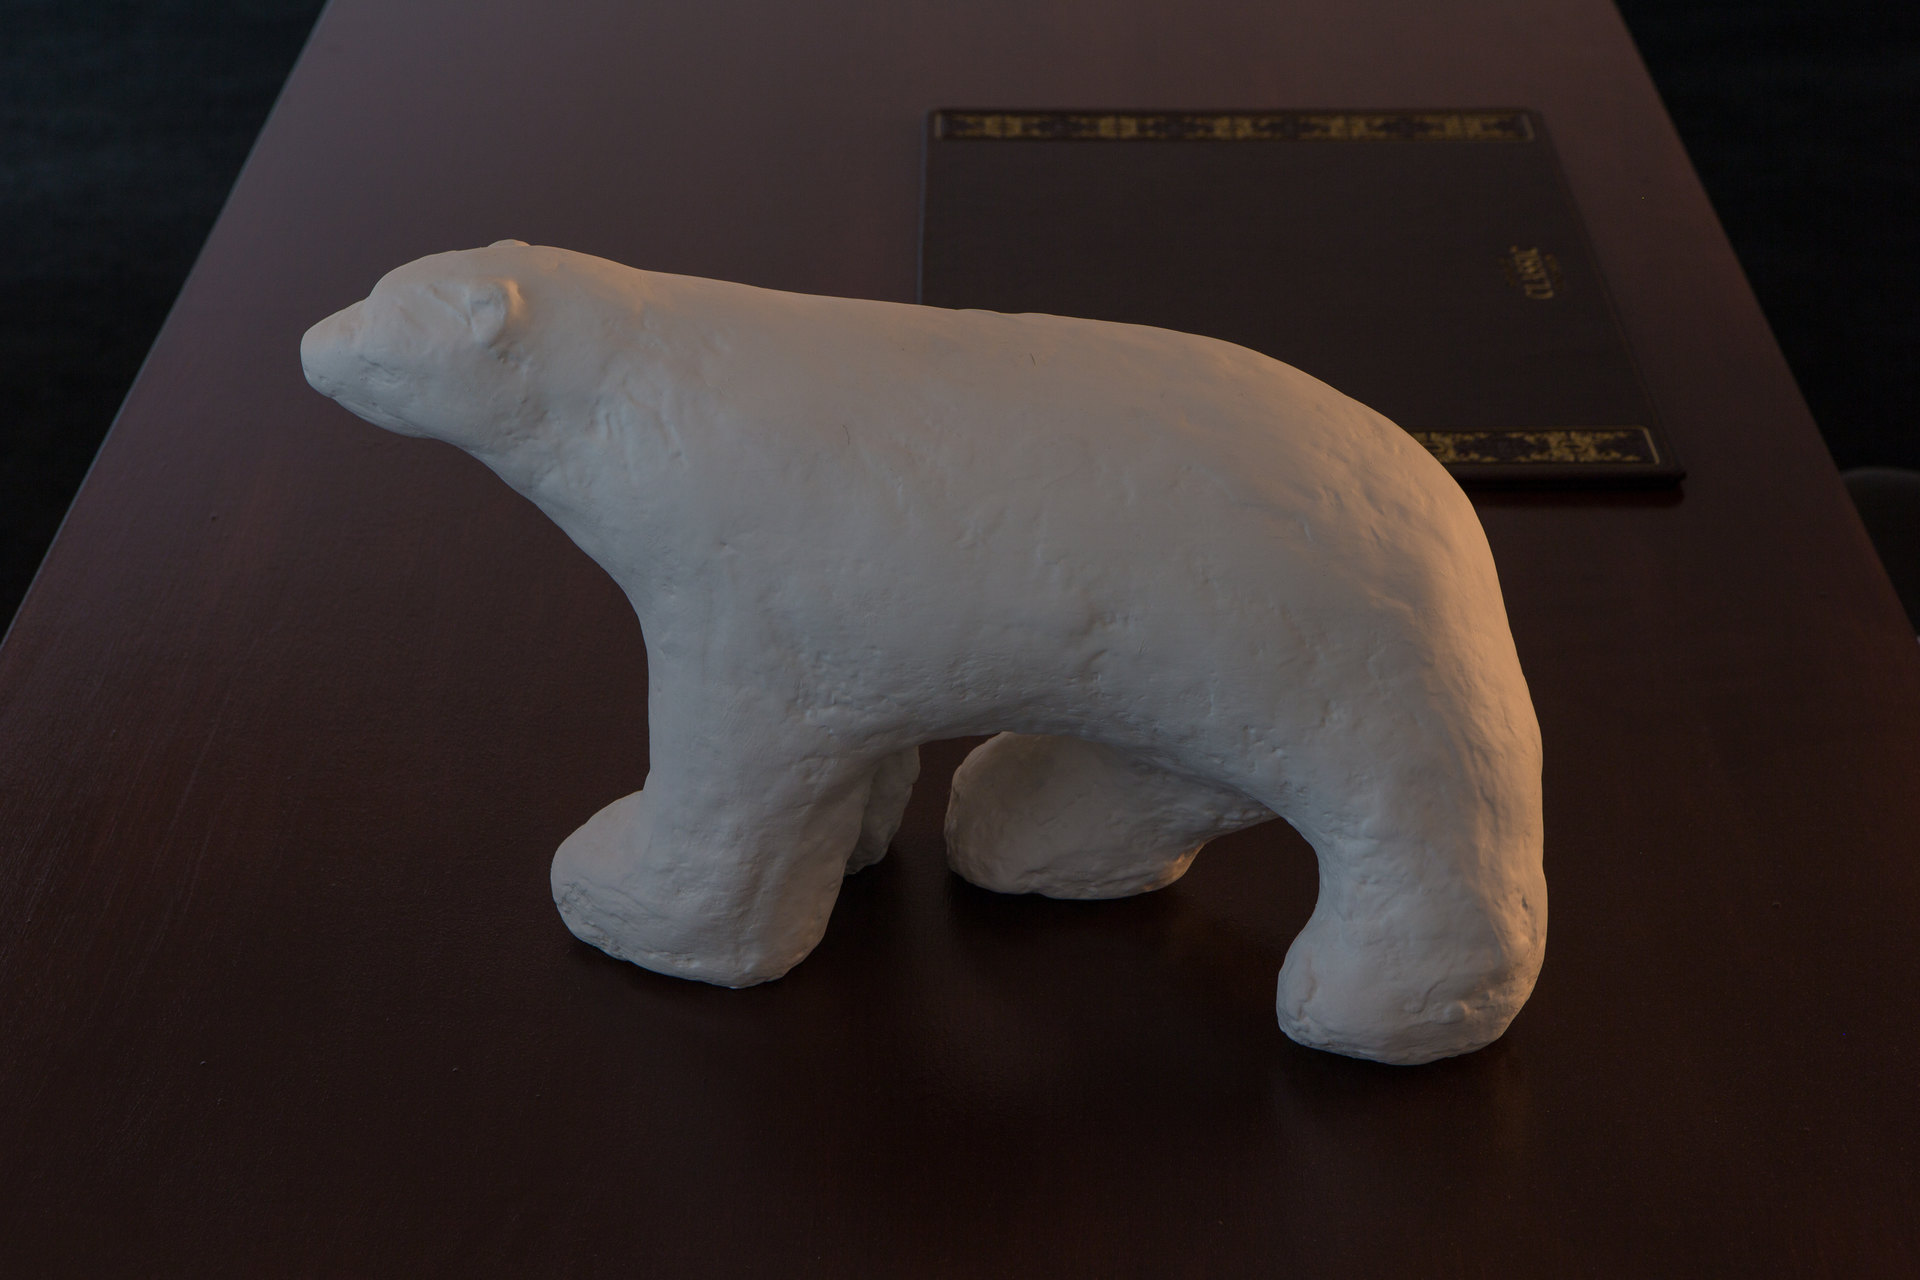 Angharad Williams and Mathis Gasser, 'Polar Bear', 2018, Hergest:Nant, Cell Project Space